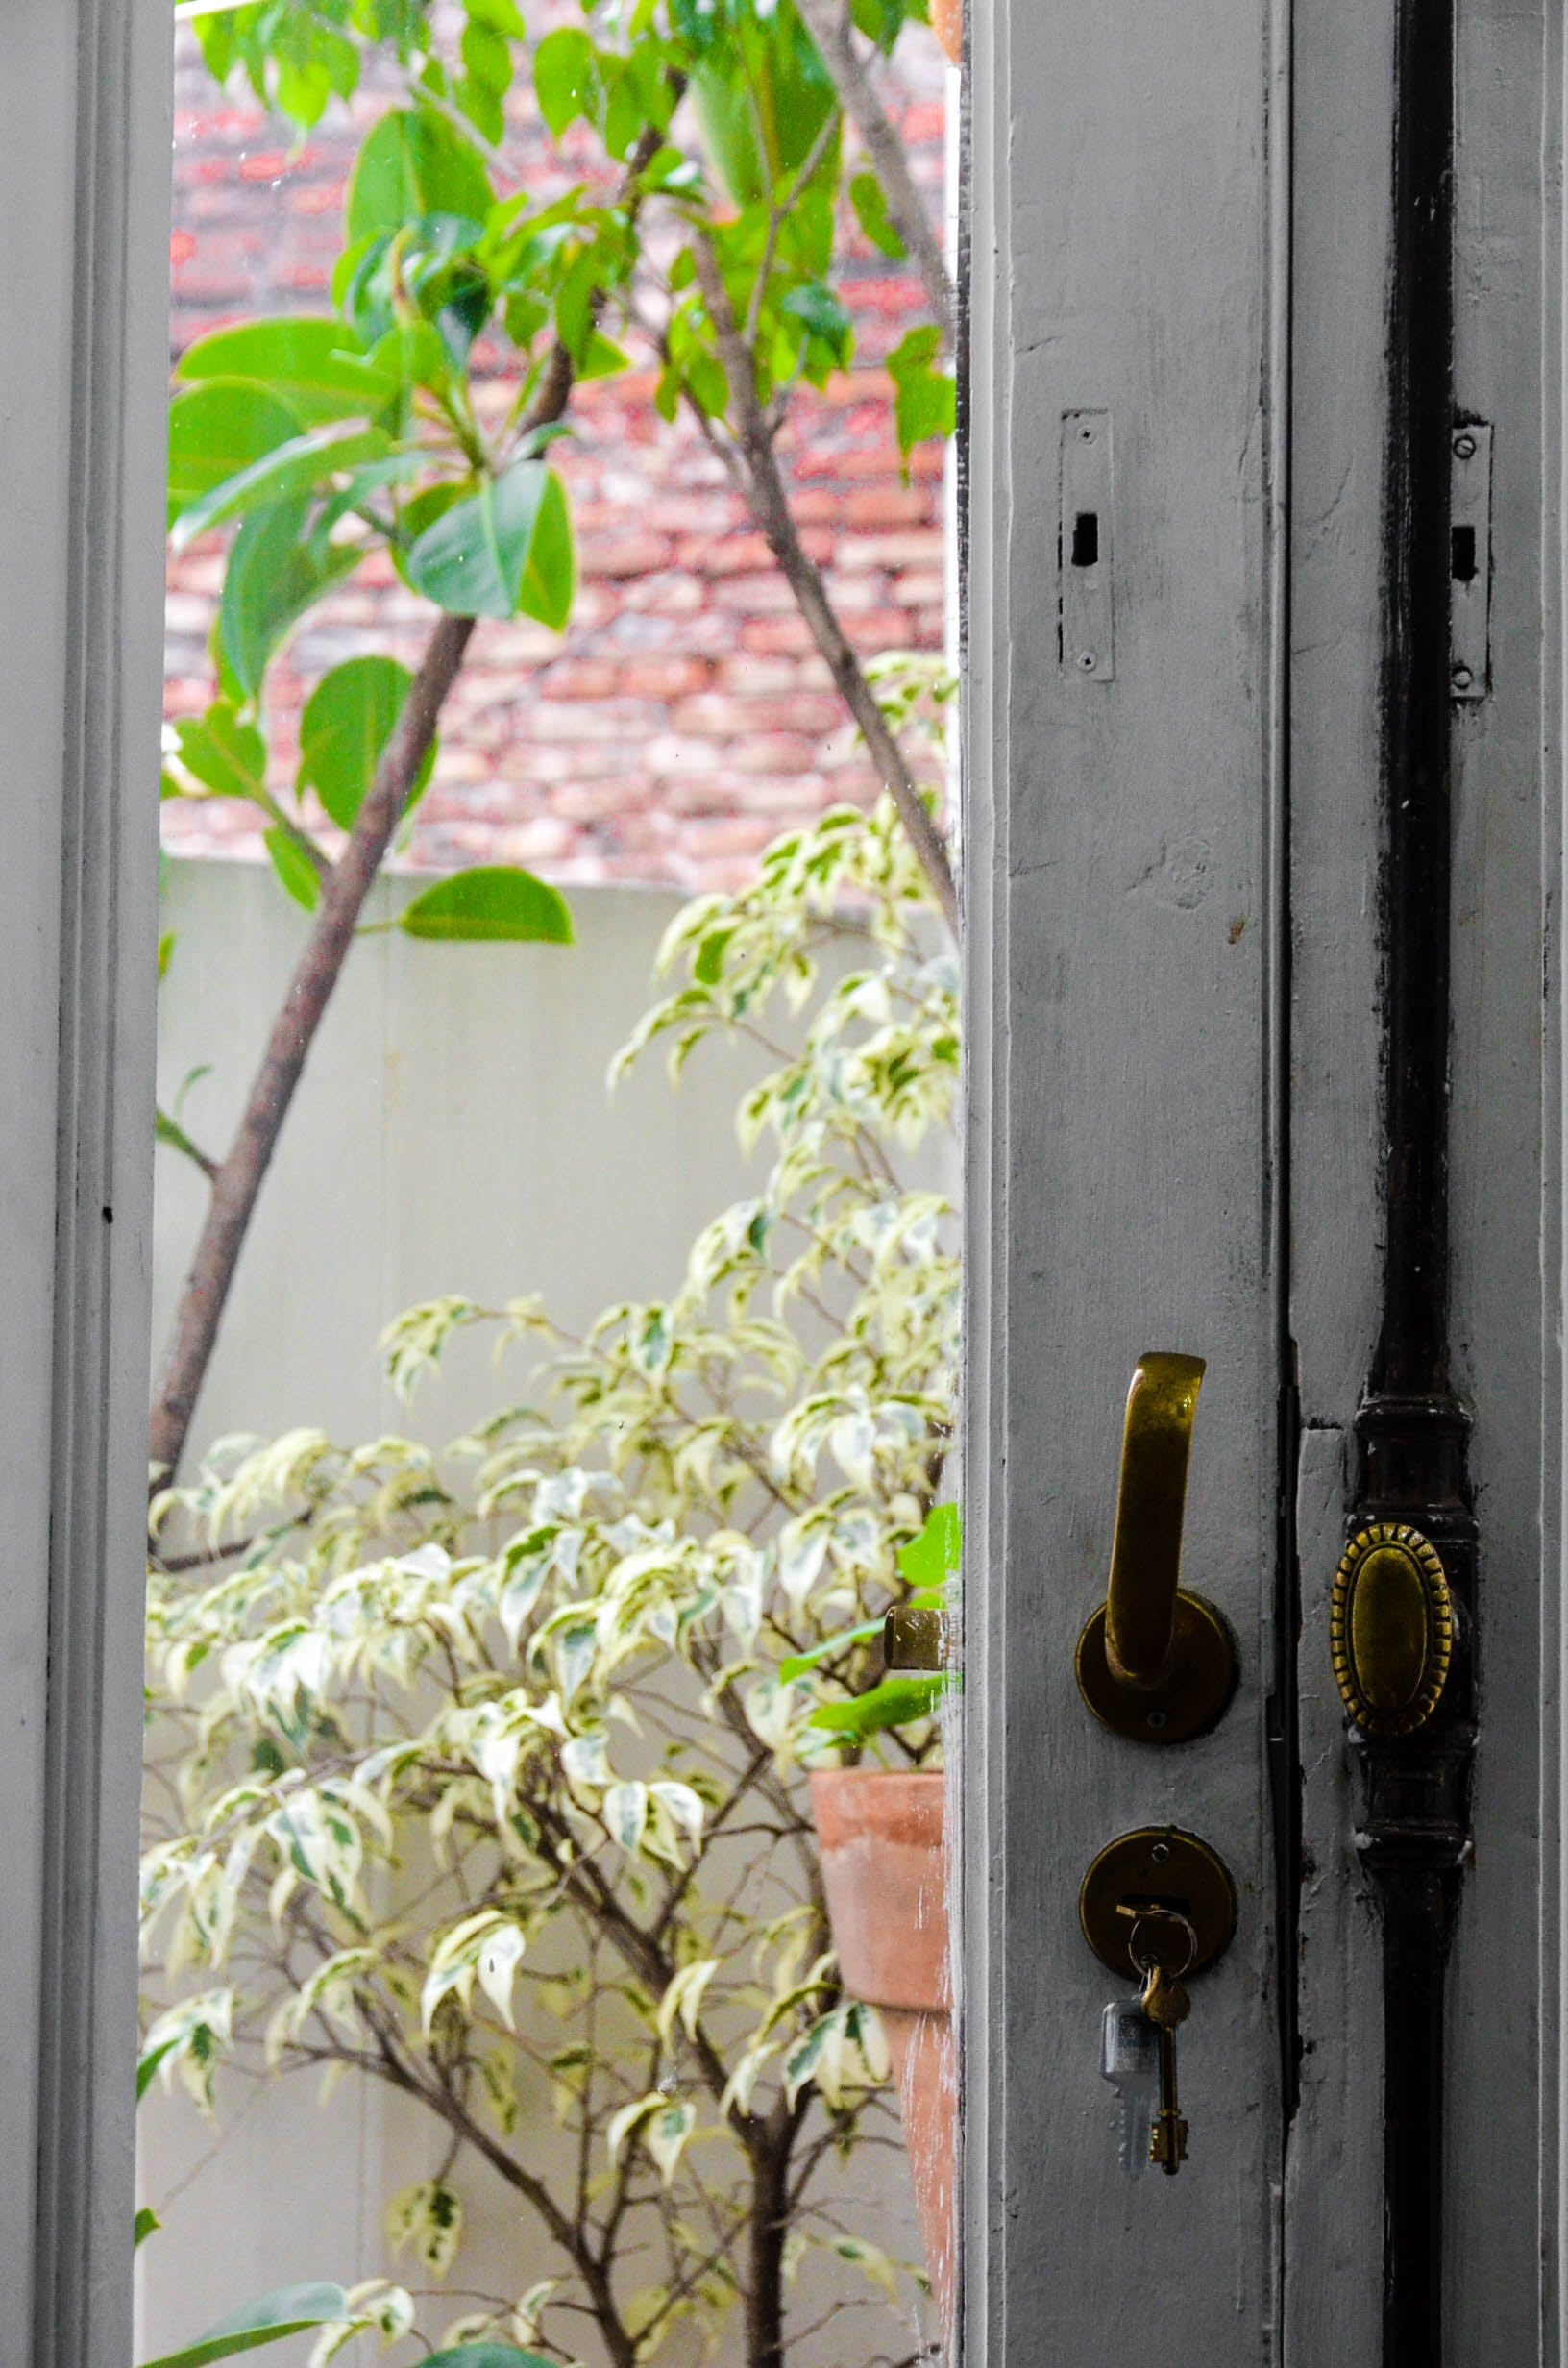 Free stock photo of plant, door, patio